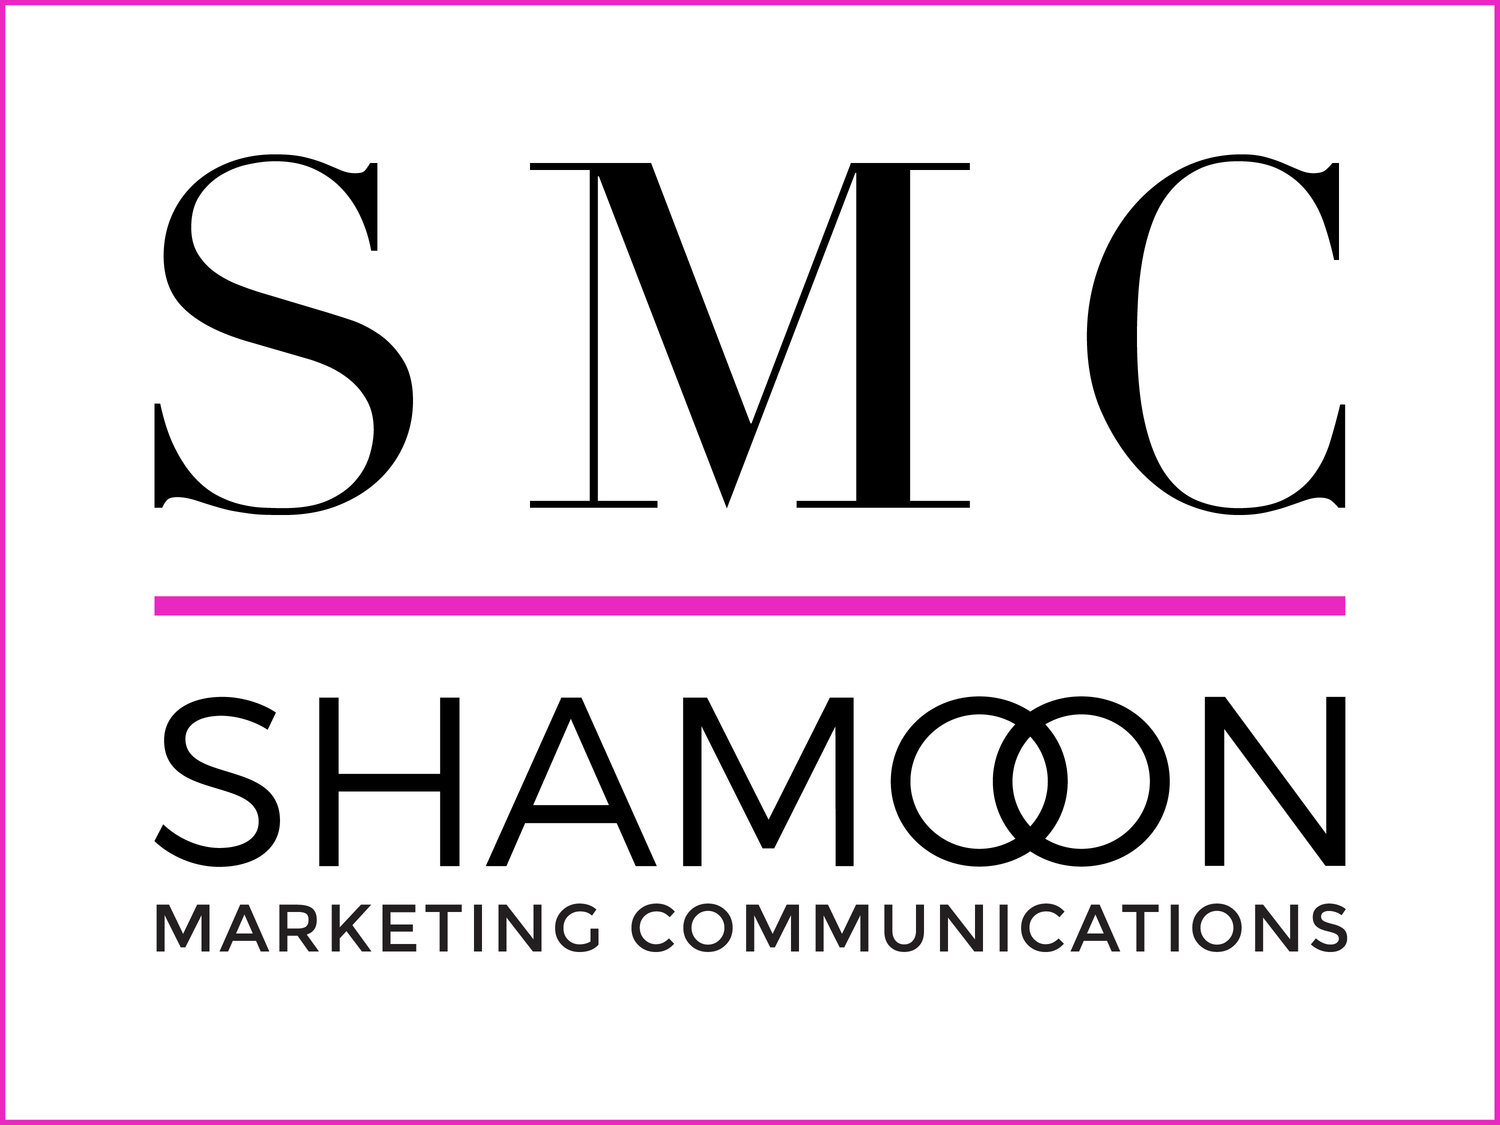 SHAMOON MARKETING COMMUNICATIONS